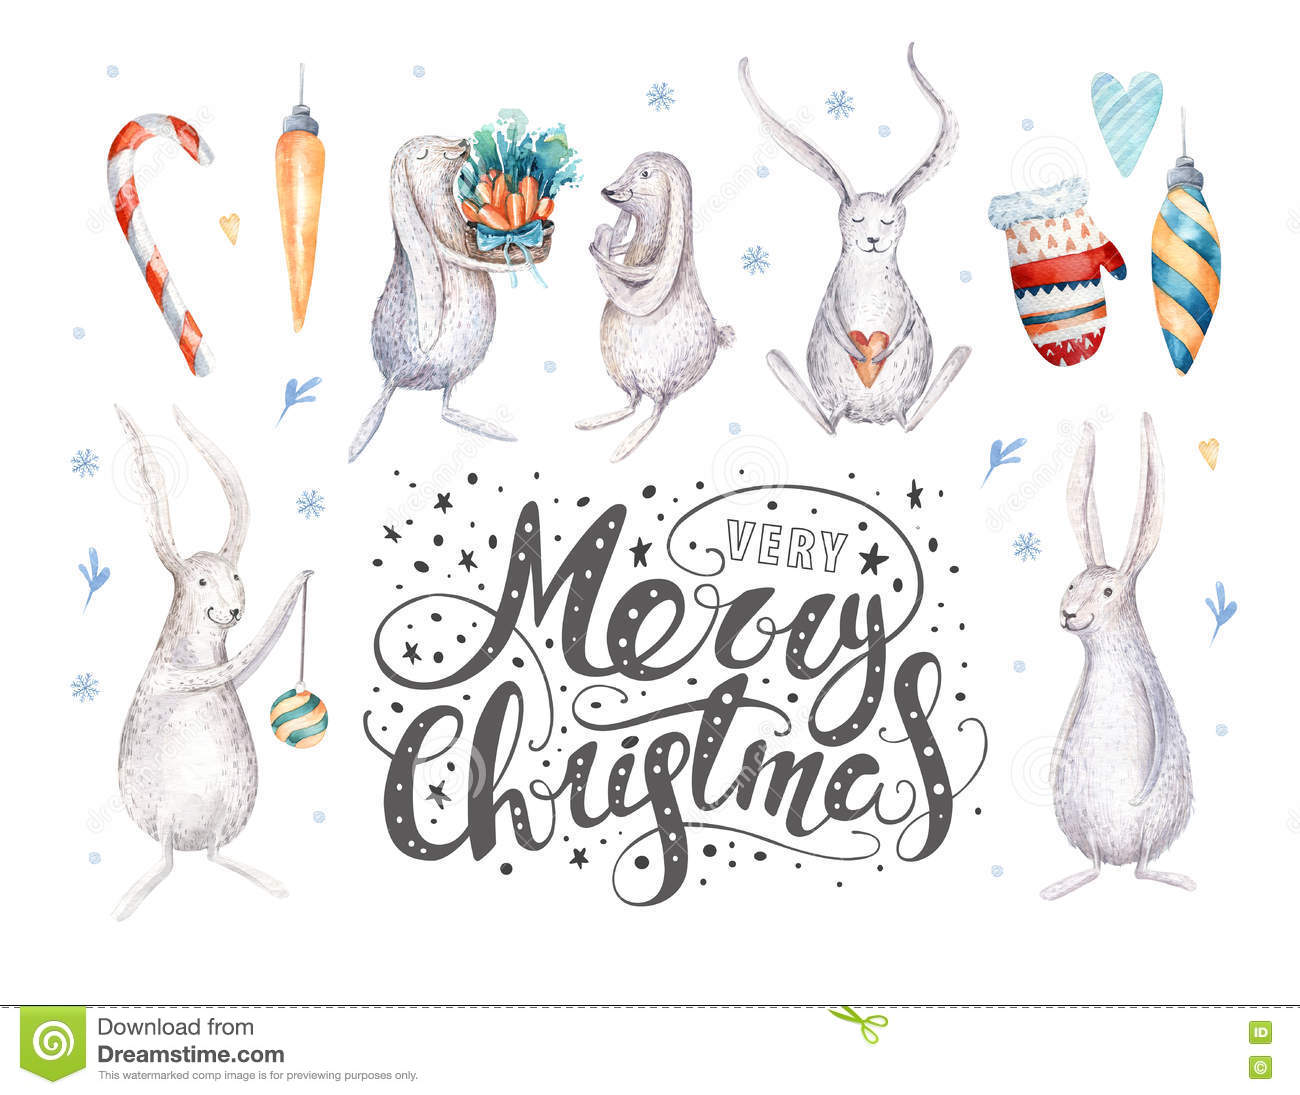 Merry christmas snowflakes and rabbits. Hand drawn bunny illustration, for your design. xmas bunnies design elements isolated on